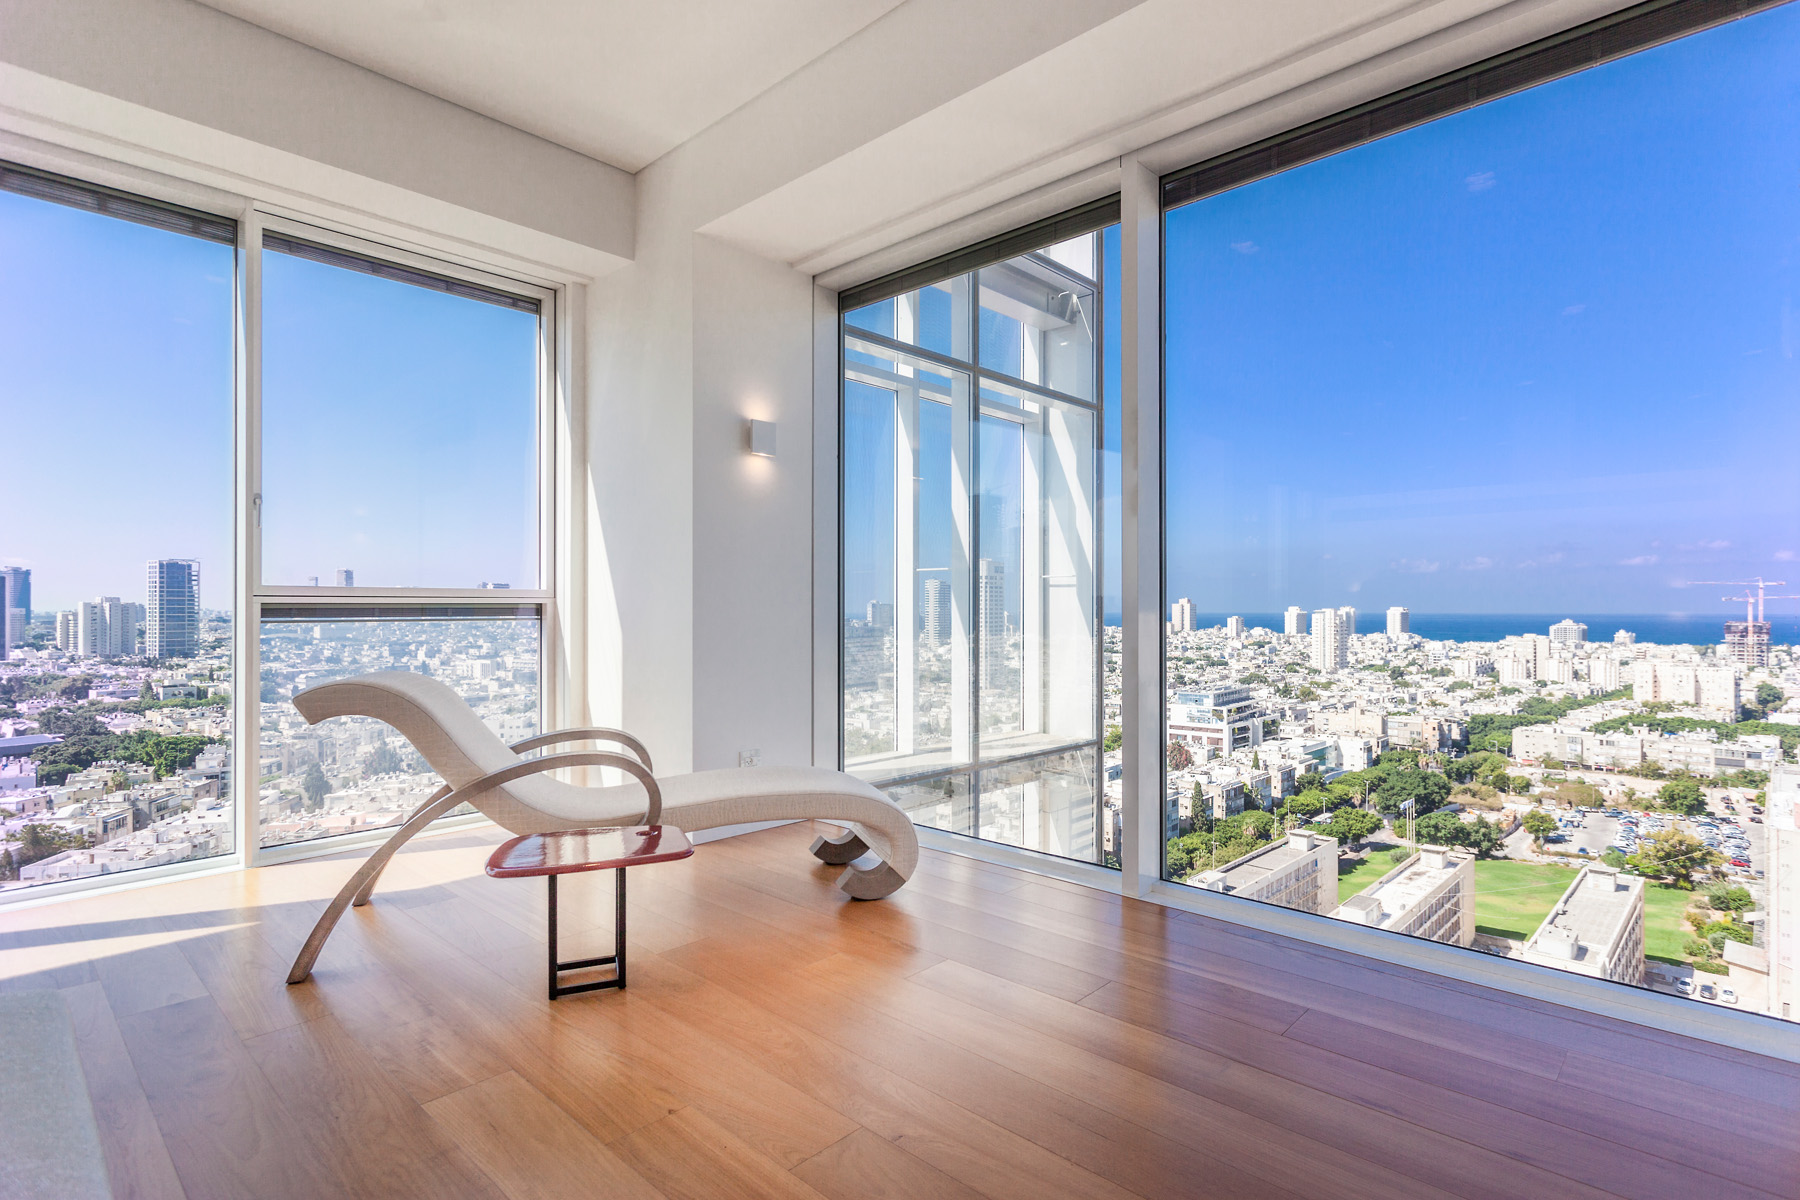 Apartment for Sale at Modern Luxury Apartment With Incomparable Views Tel Aviv, Israel Israel